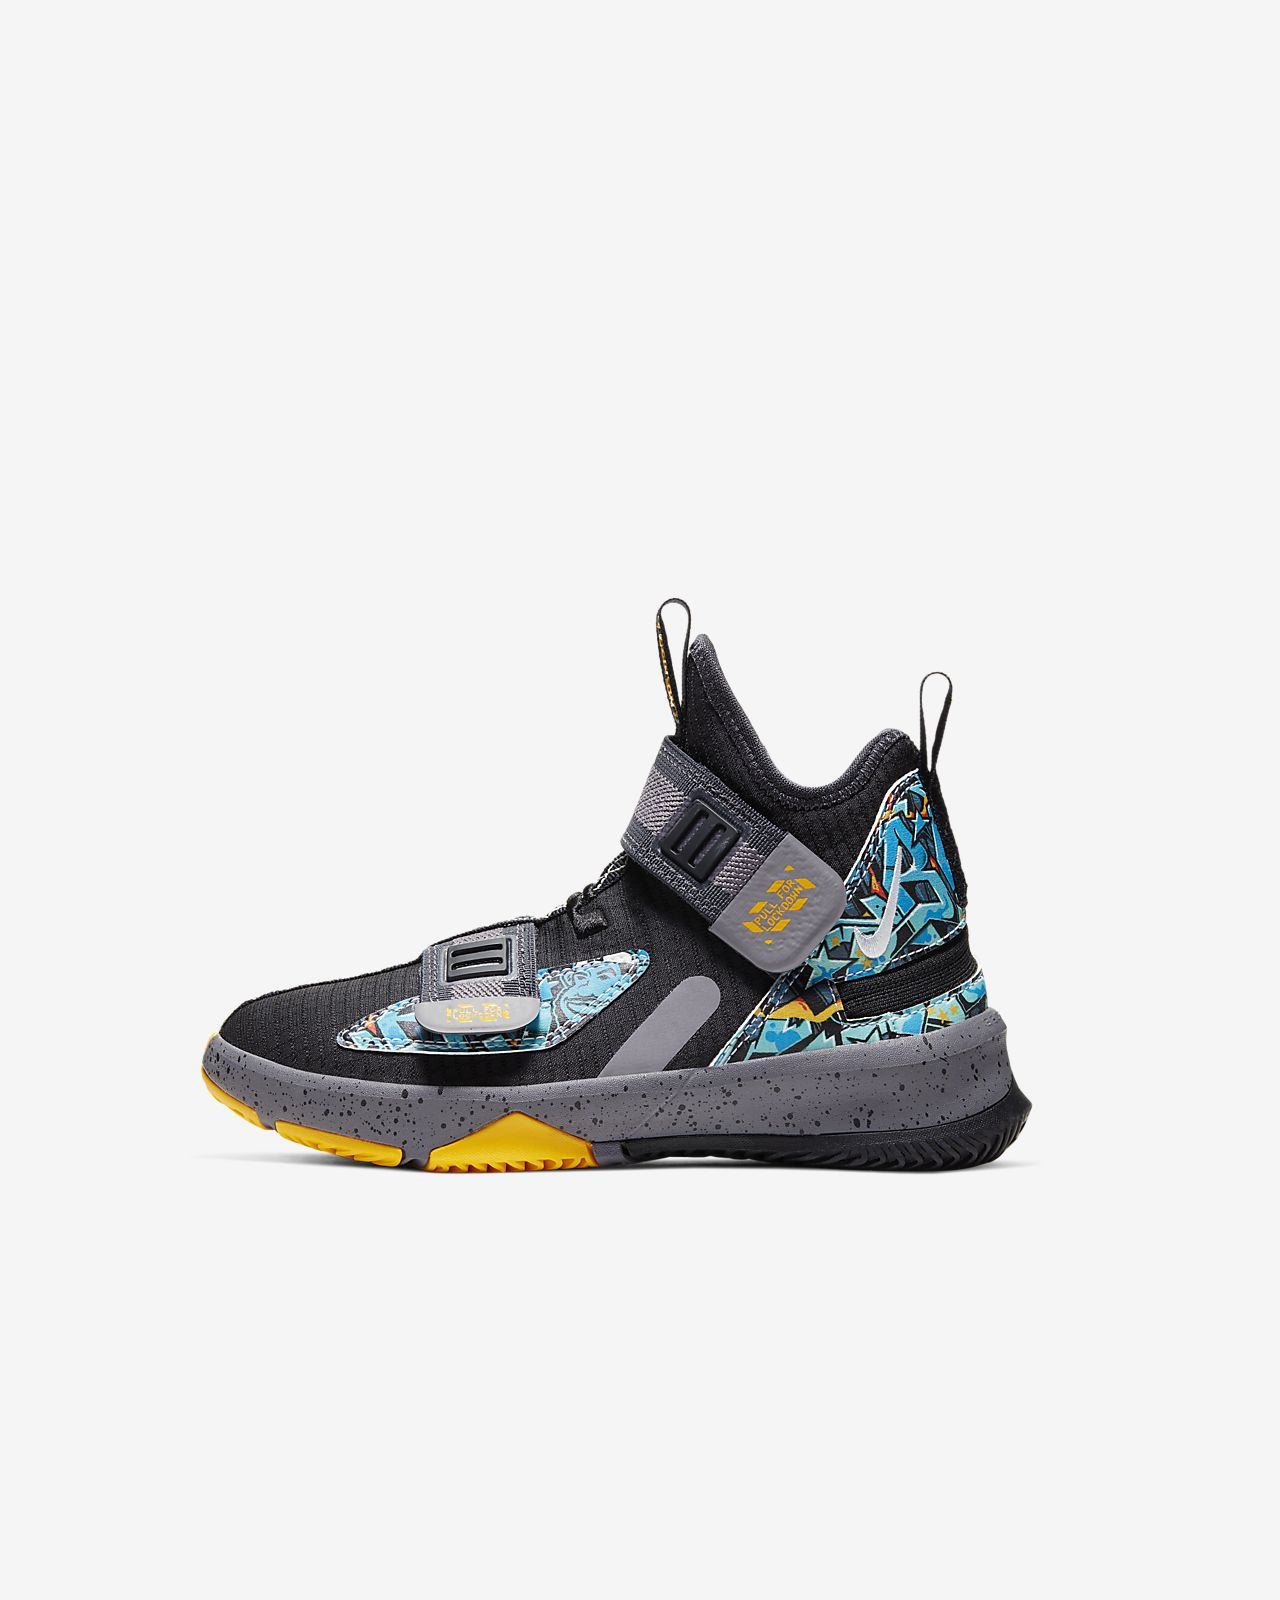 LeBron Soldier 13 FlyEase Younger Kids' Shoe